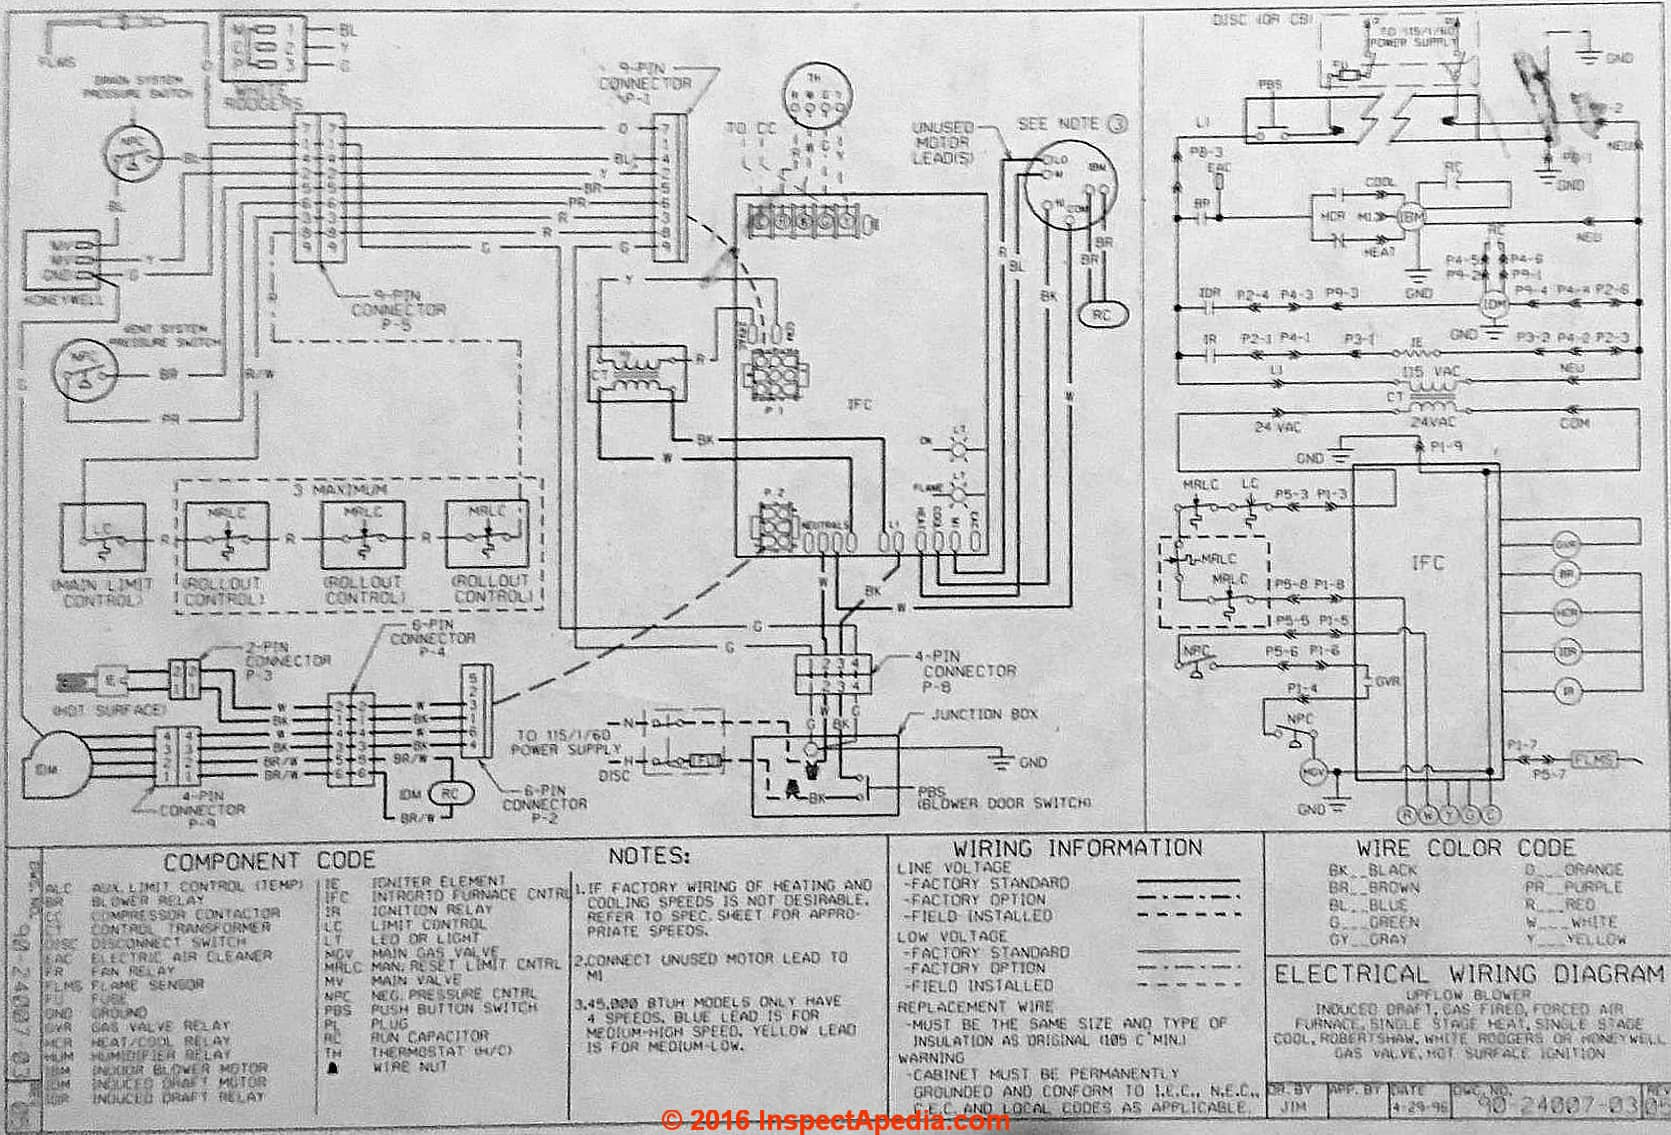 Rheem_AHU_Wiring_Diagram_IAP air conditioner heat pump faqs old rheem thermostat wiring diagram at mifinder.co